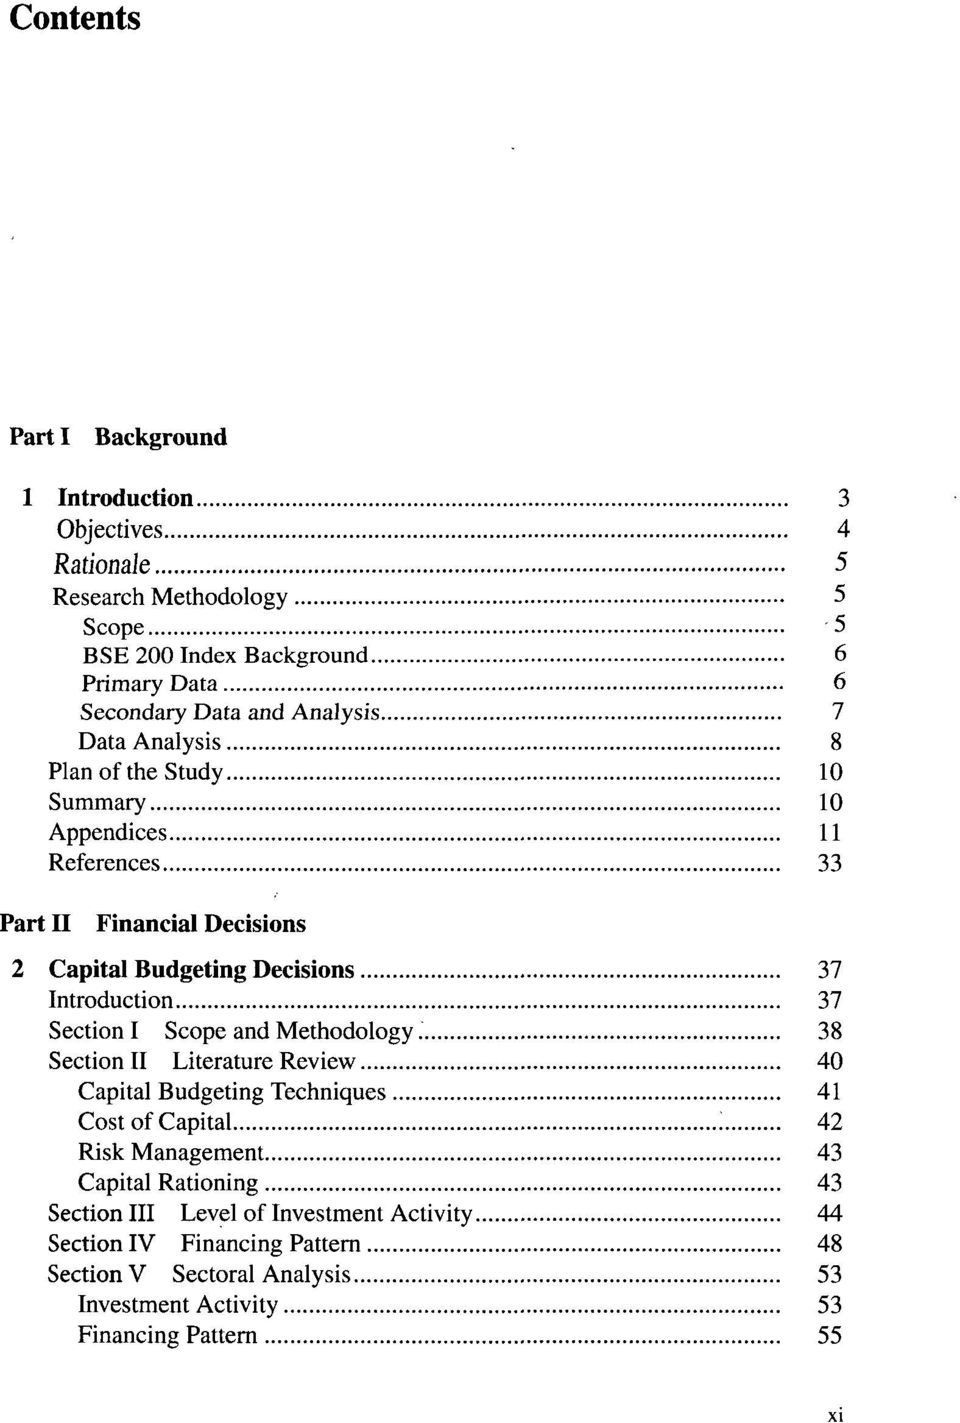 Introduction 37 Section I Scope and Methodology 38 Section II Literature Review 40 Capital Budgeting Techniques 41 Cost of Capital i 42 Risk Management 43